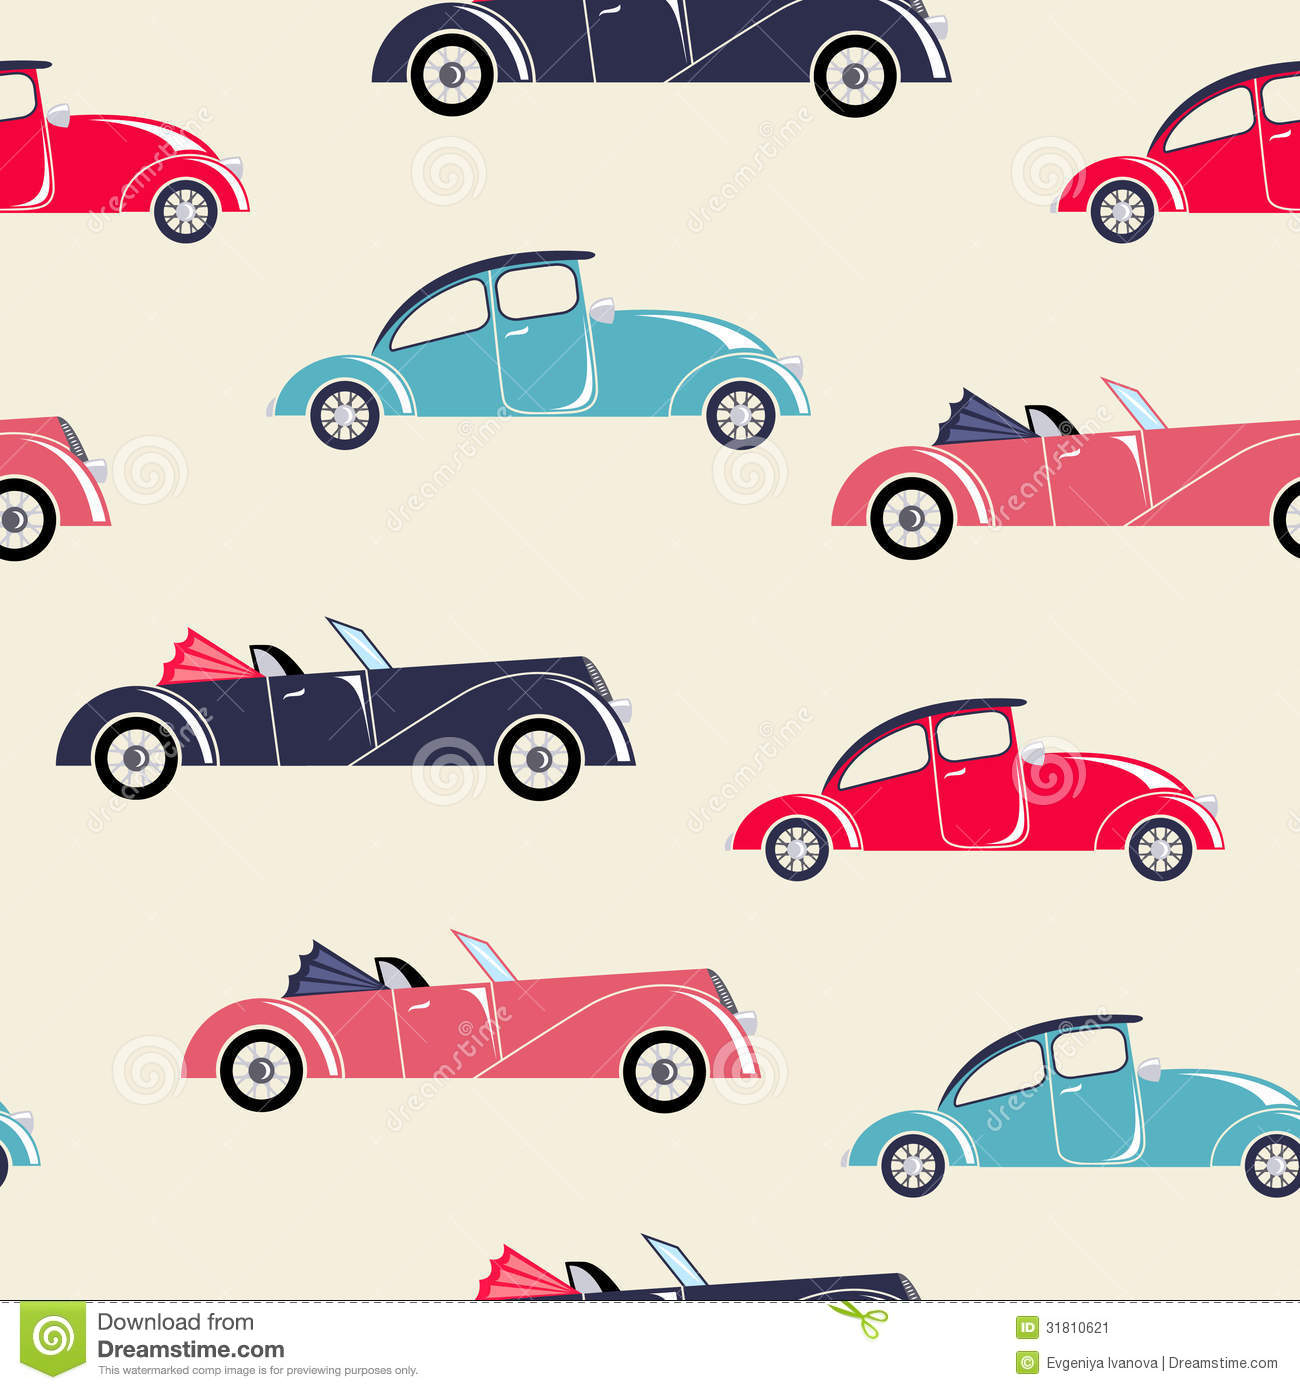 Retro cars seamless pattern